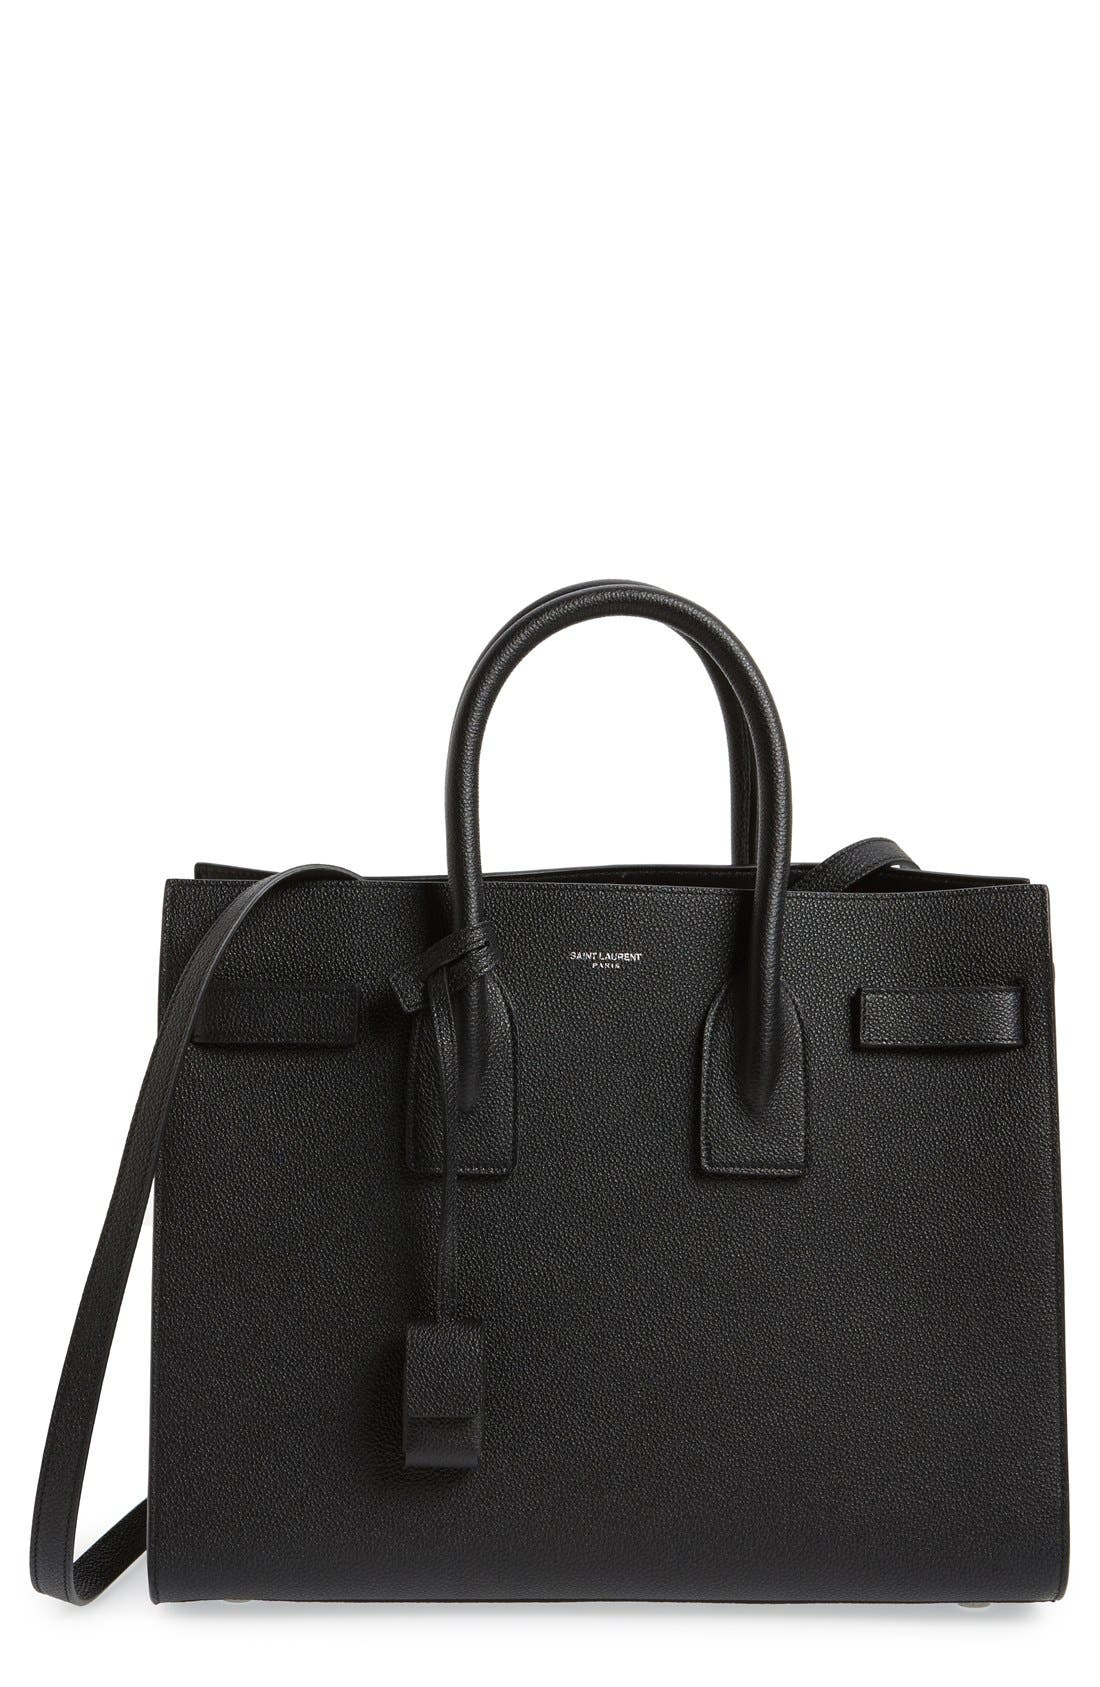 SAINT LAURENT Small Sac de Jour Leather Tote